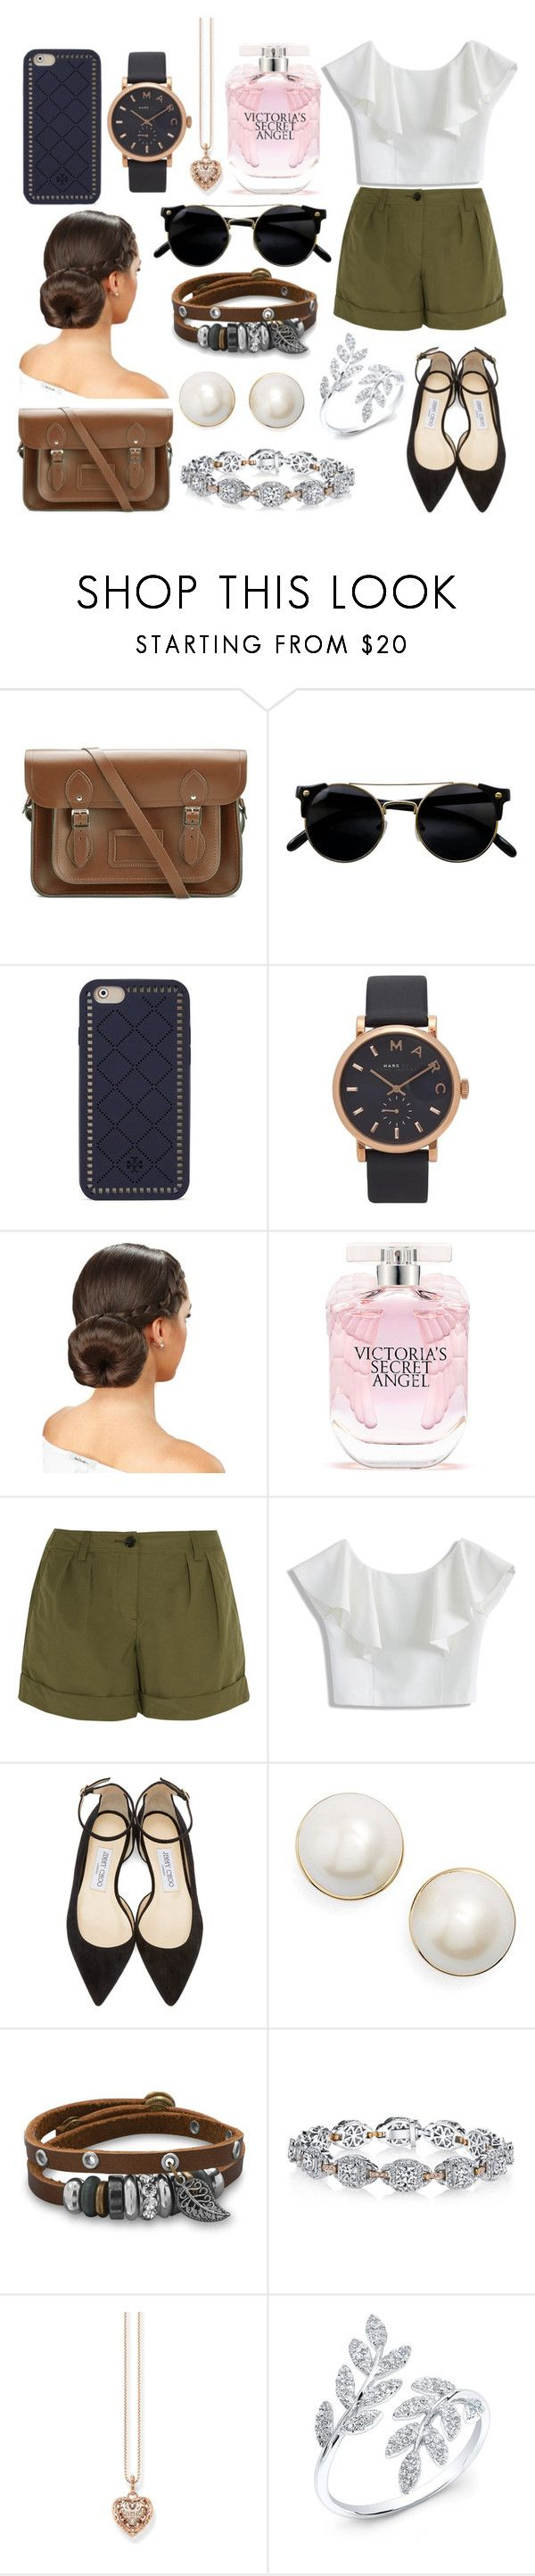 """""""Teresa"""" by magnificentmichelle ❤ liked on Polyvore featuring The Cambridge Satchel Company, Tory Burch, Marc Jacobs, Victoria's Secret, Burberry, Chicwish, Jimmy Choo, Kate Spade, BillyTheTree and Harry Kotlar"""